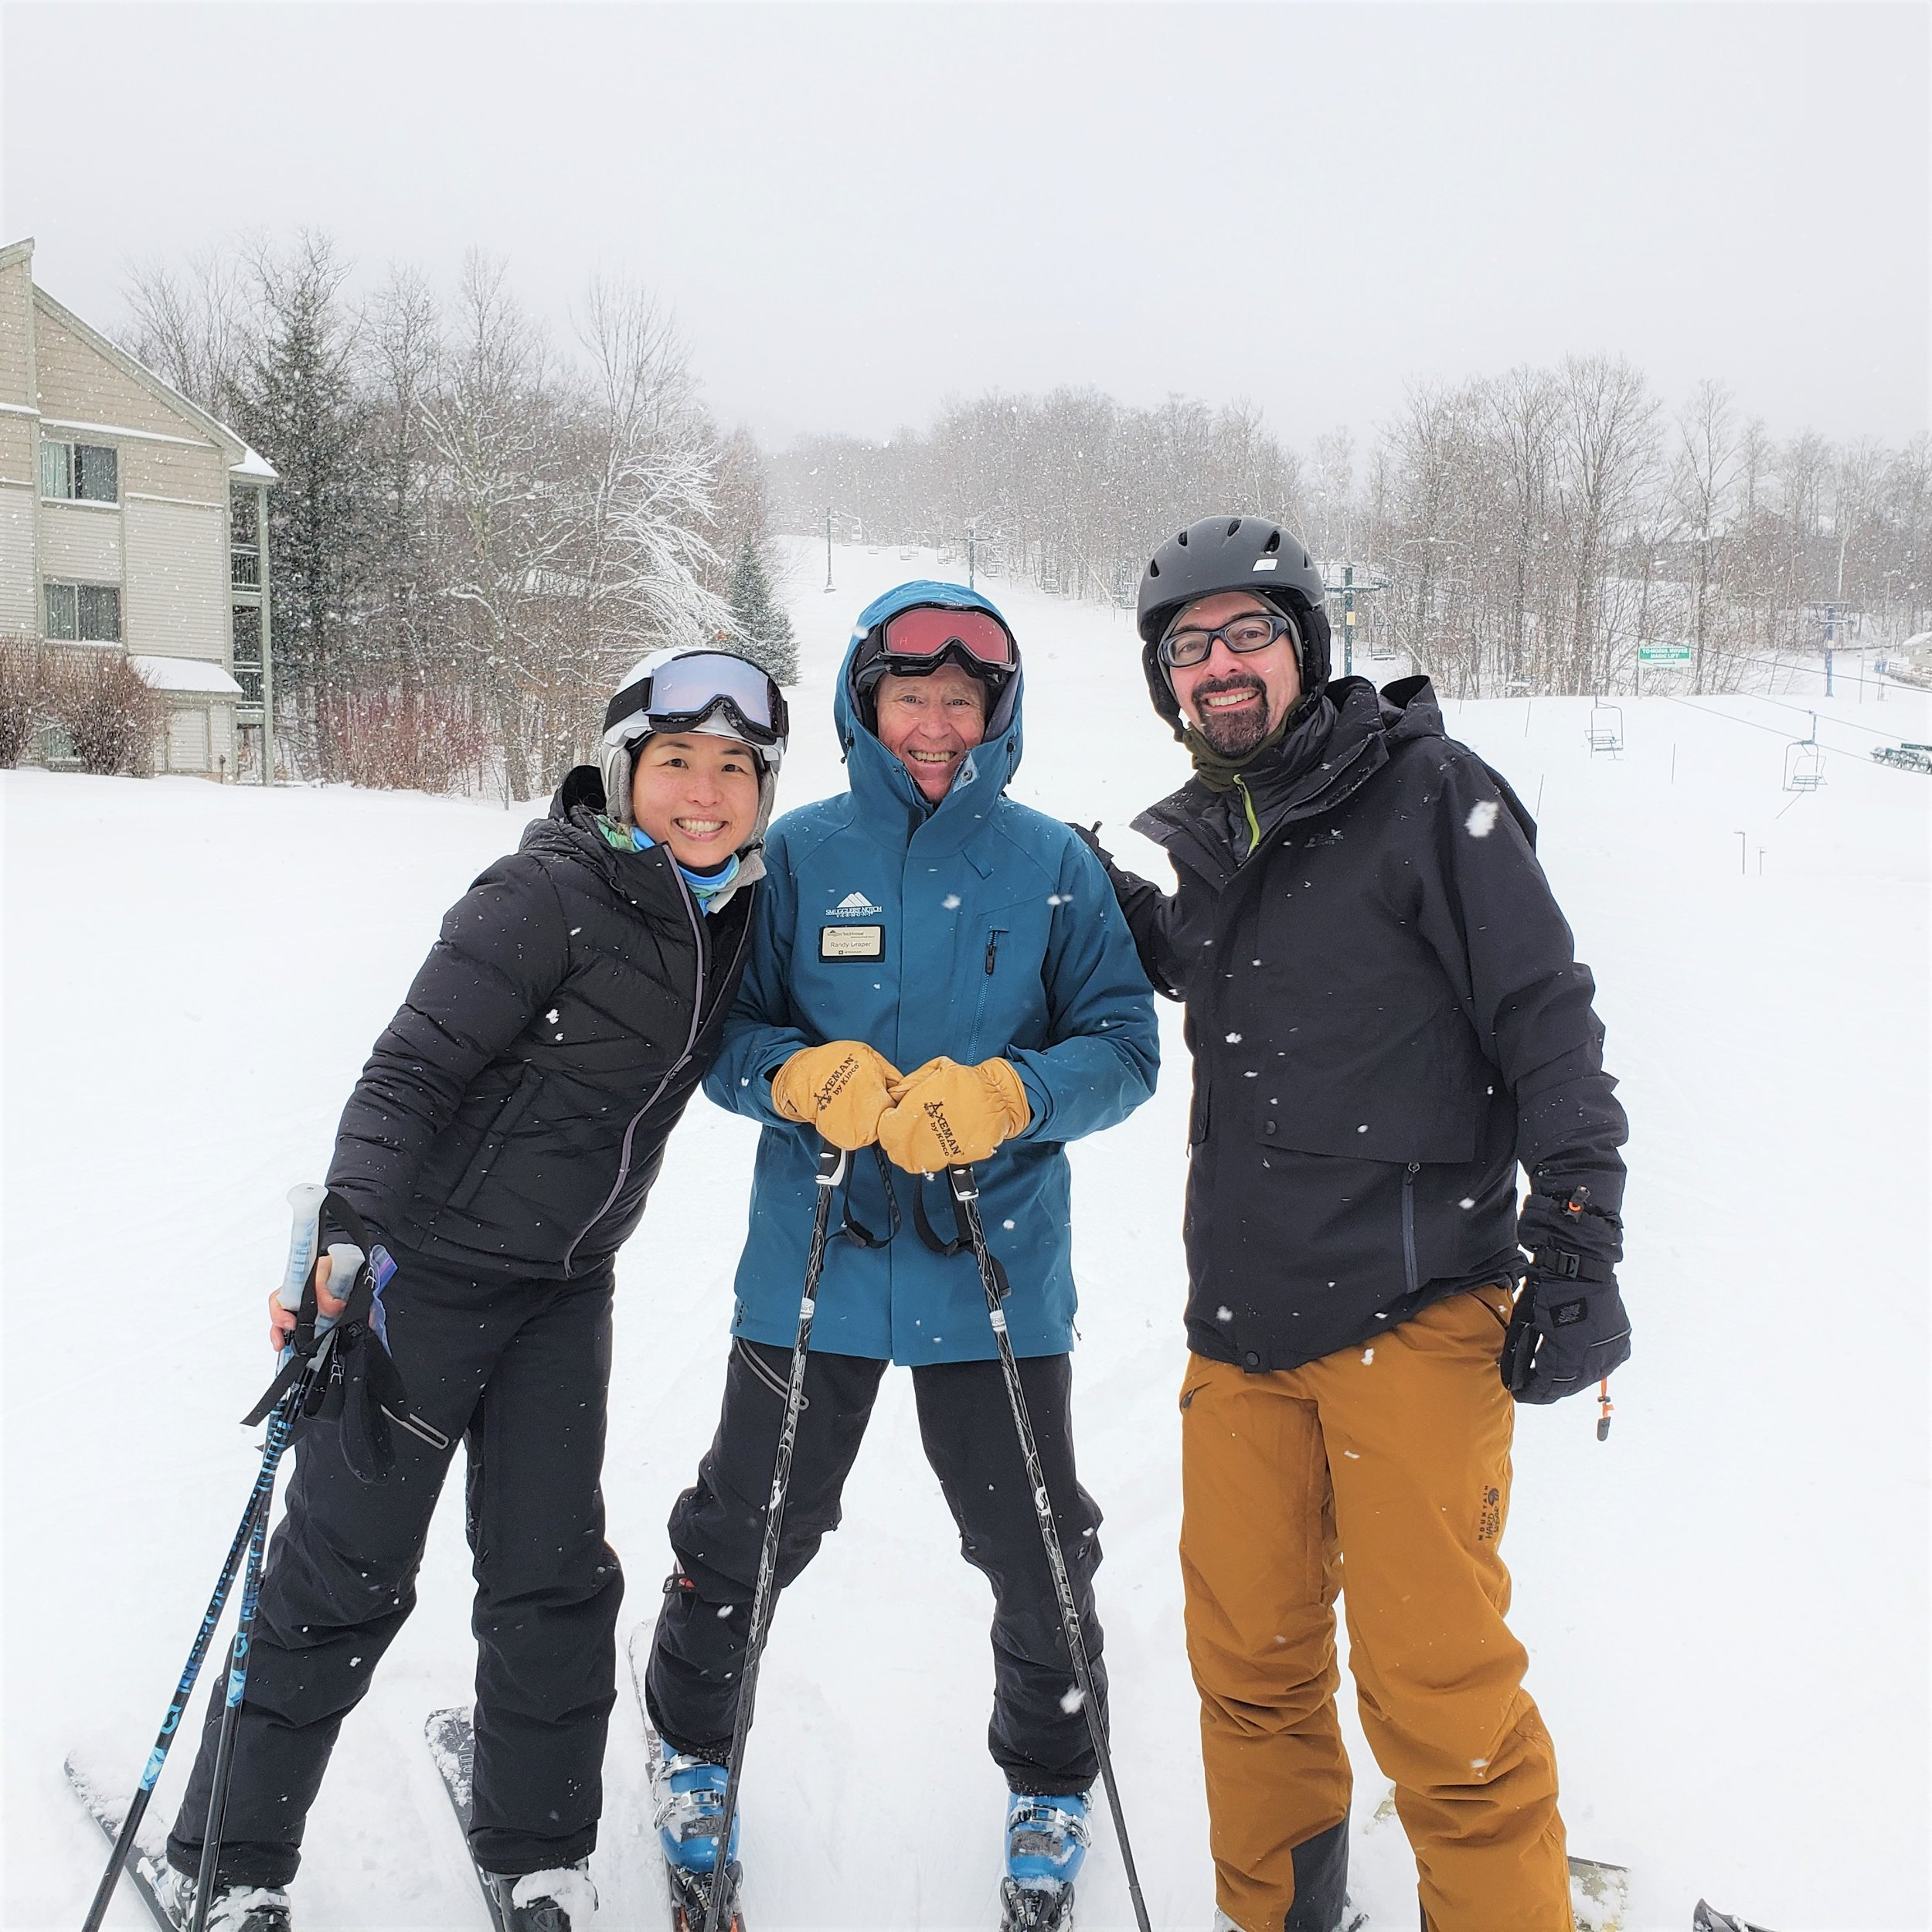 Adult lessons at Smugglers' Notch